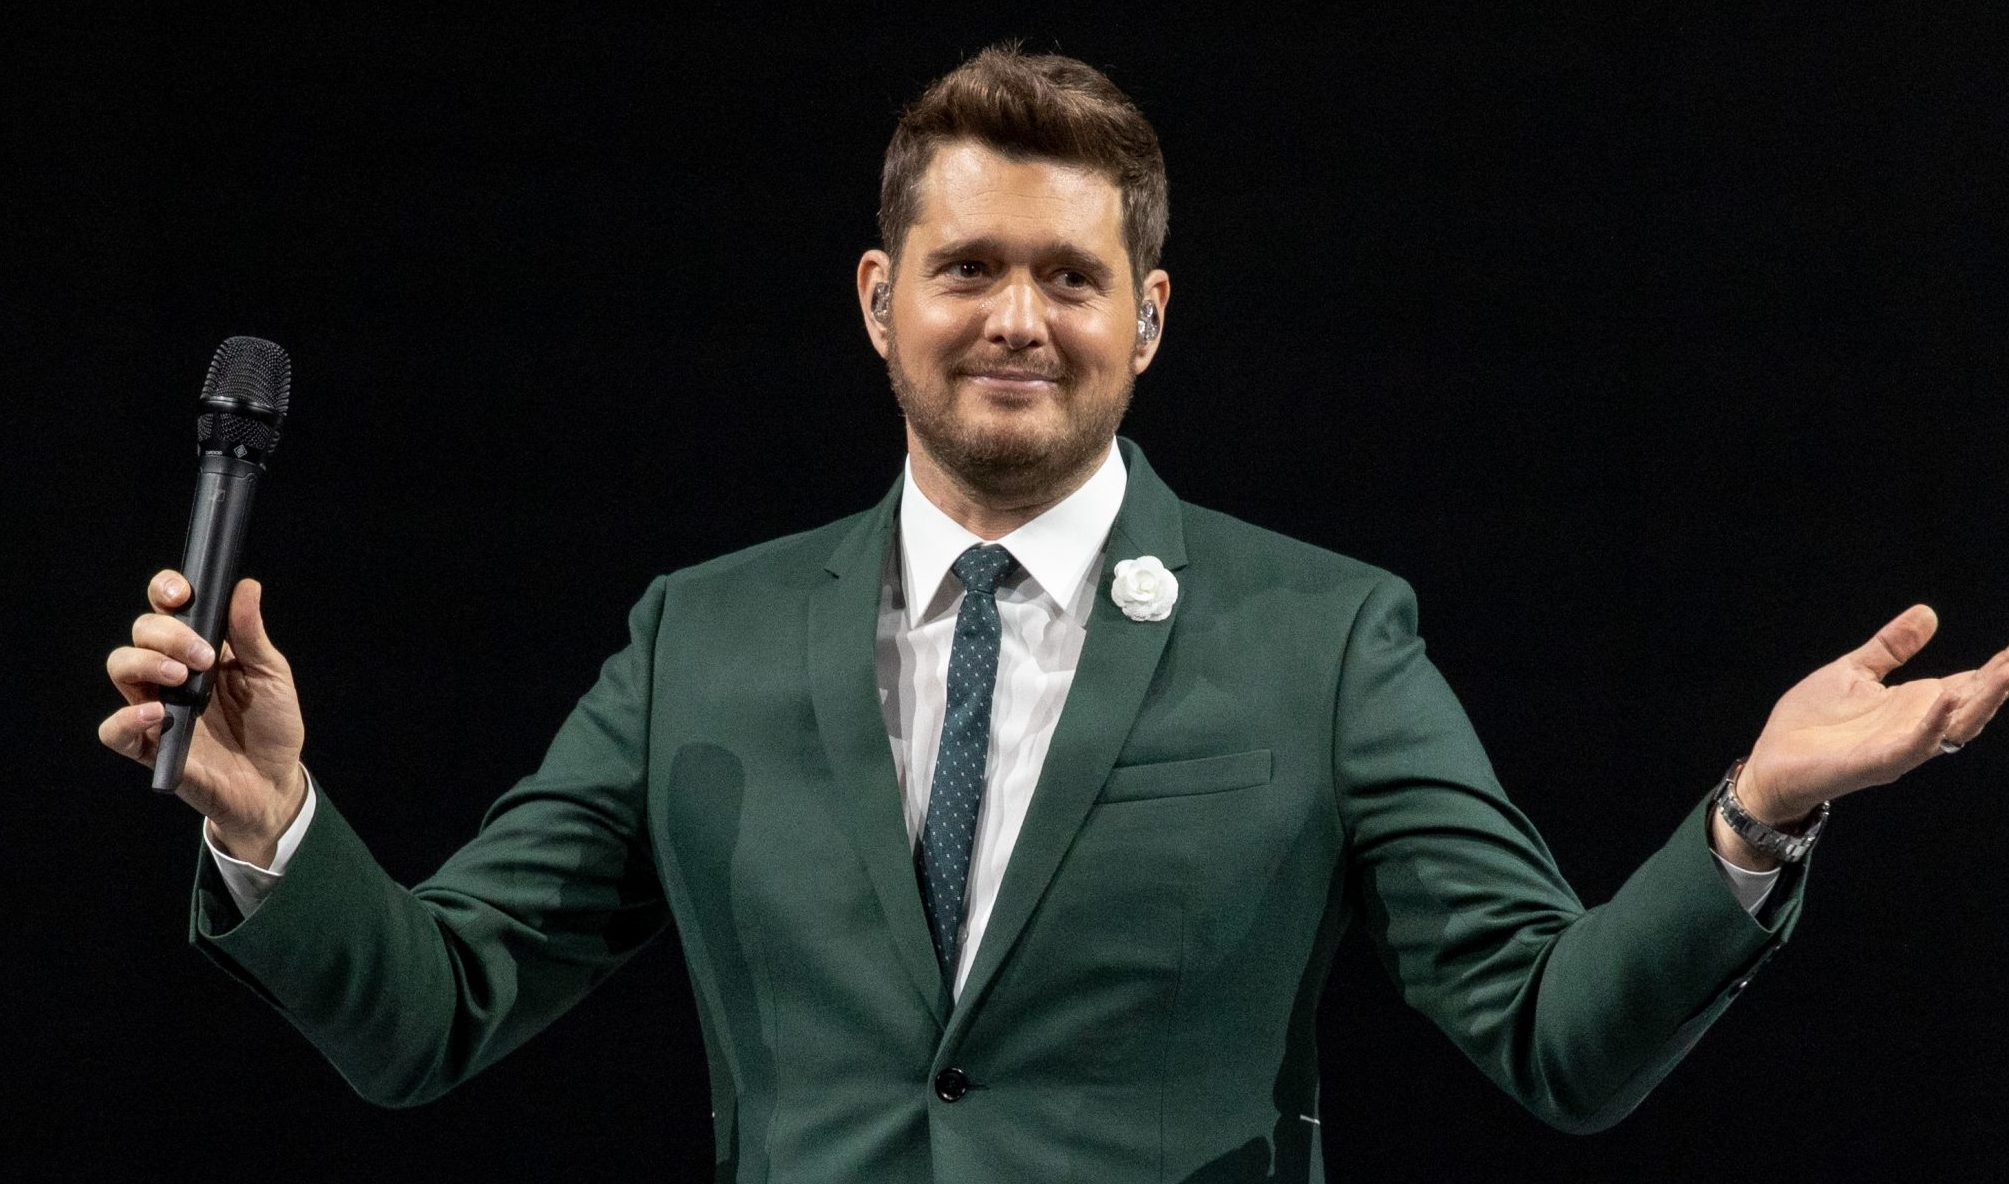 Stars In Their Eyes: Michael Bublé reportedly in talks to feature on revamped show